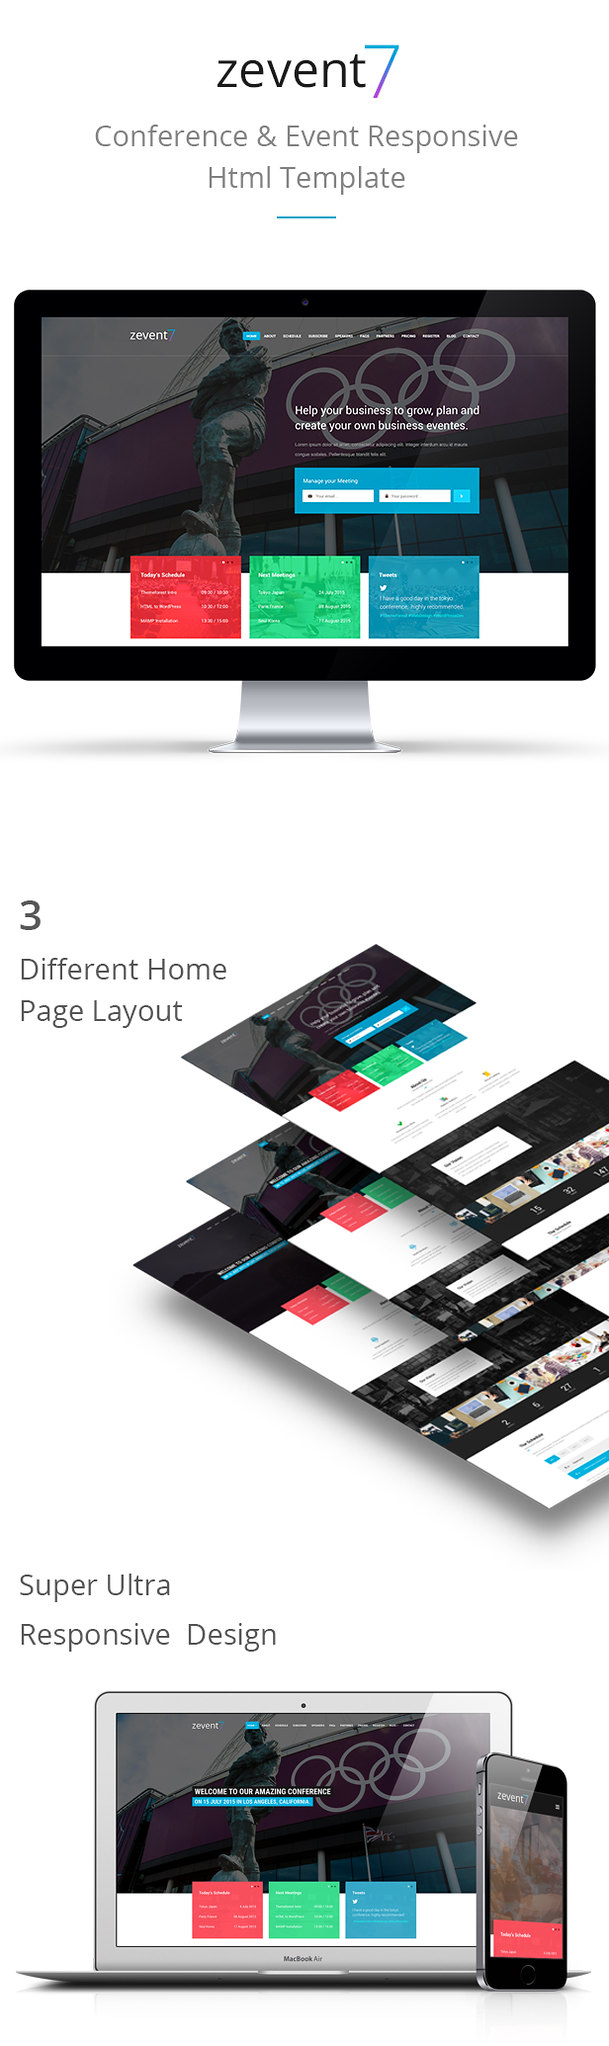 Zevent - Conference & Event Responsive Html Template